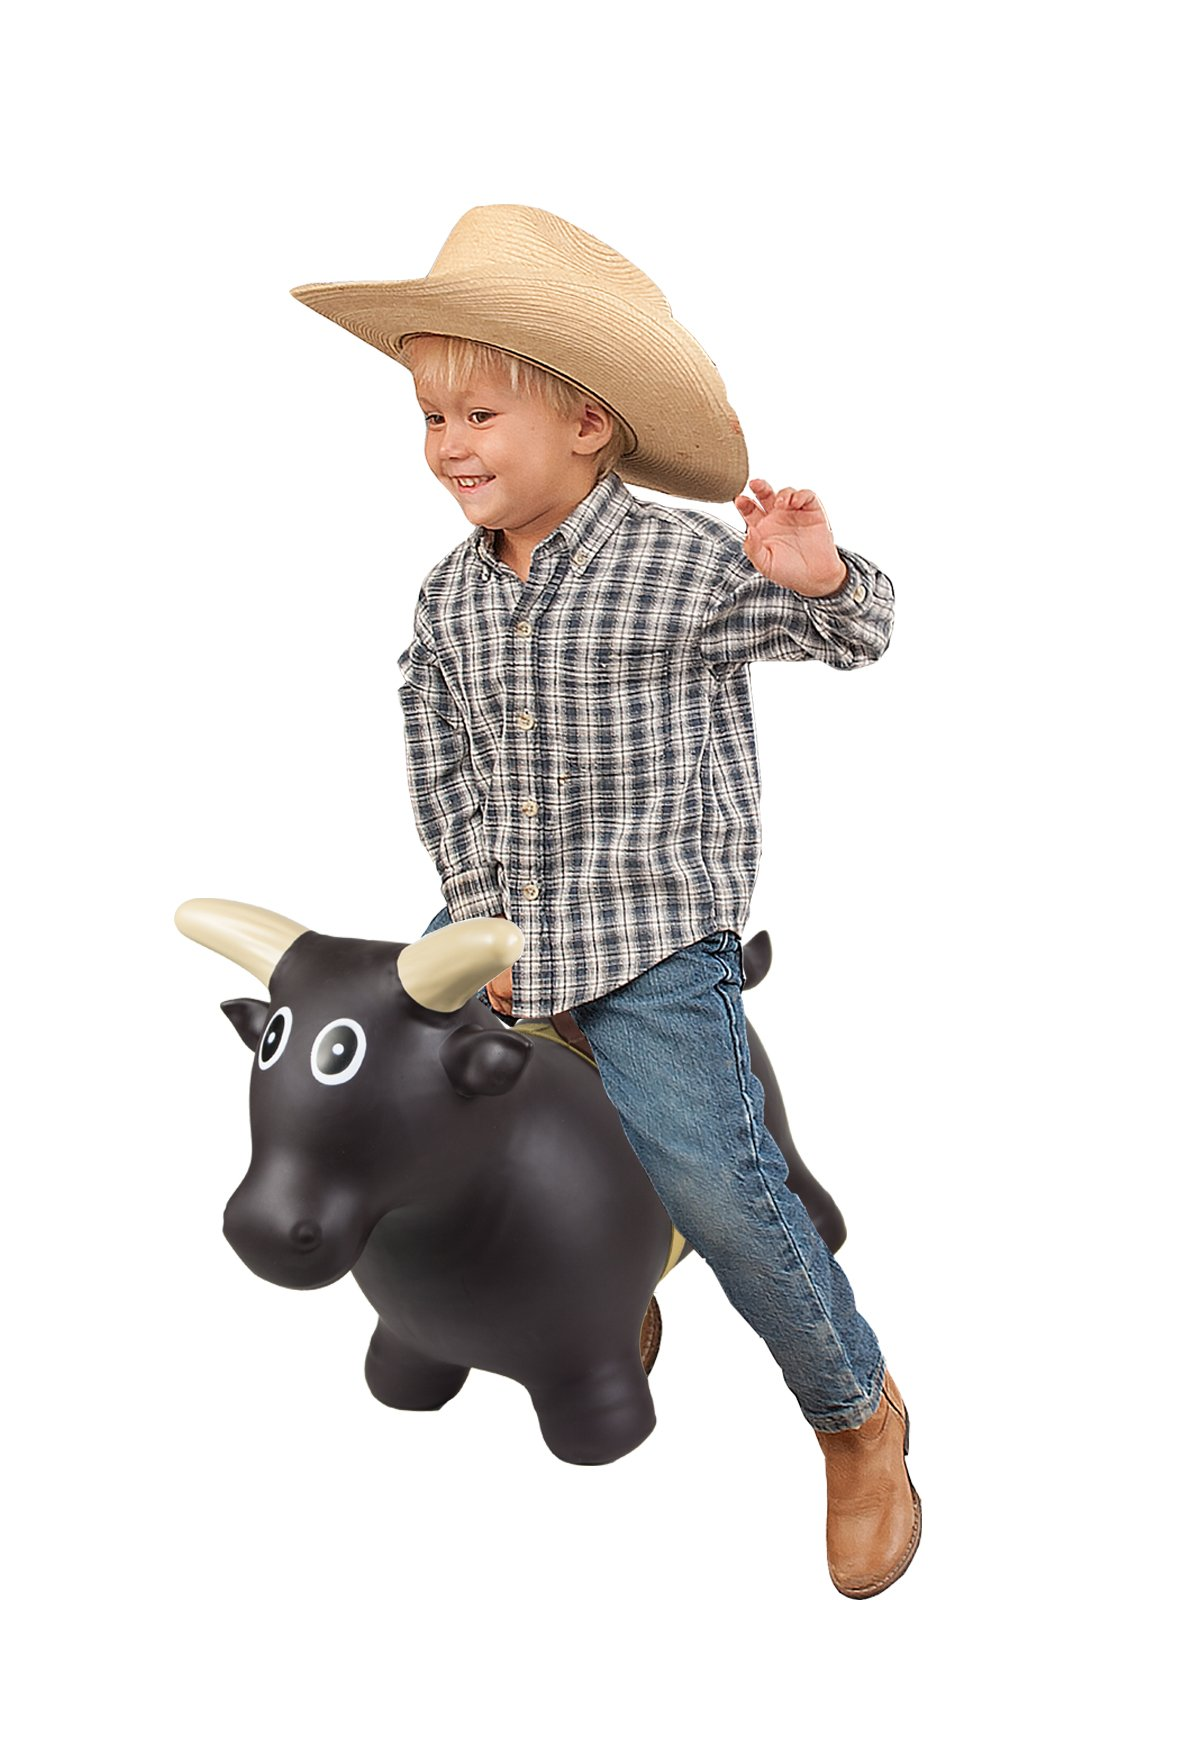 Big Country Toys Lil Bucker - Kids Hopper Toys - Bull Riding Toys & Rodeo Toys